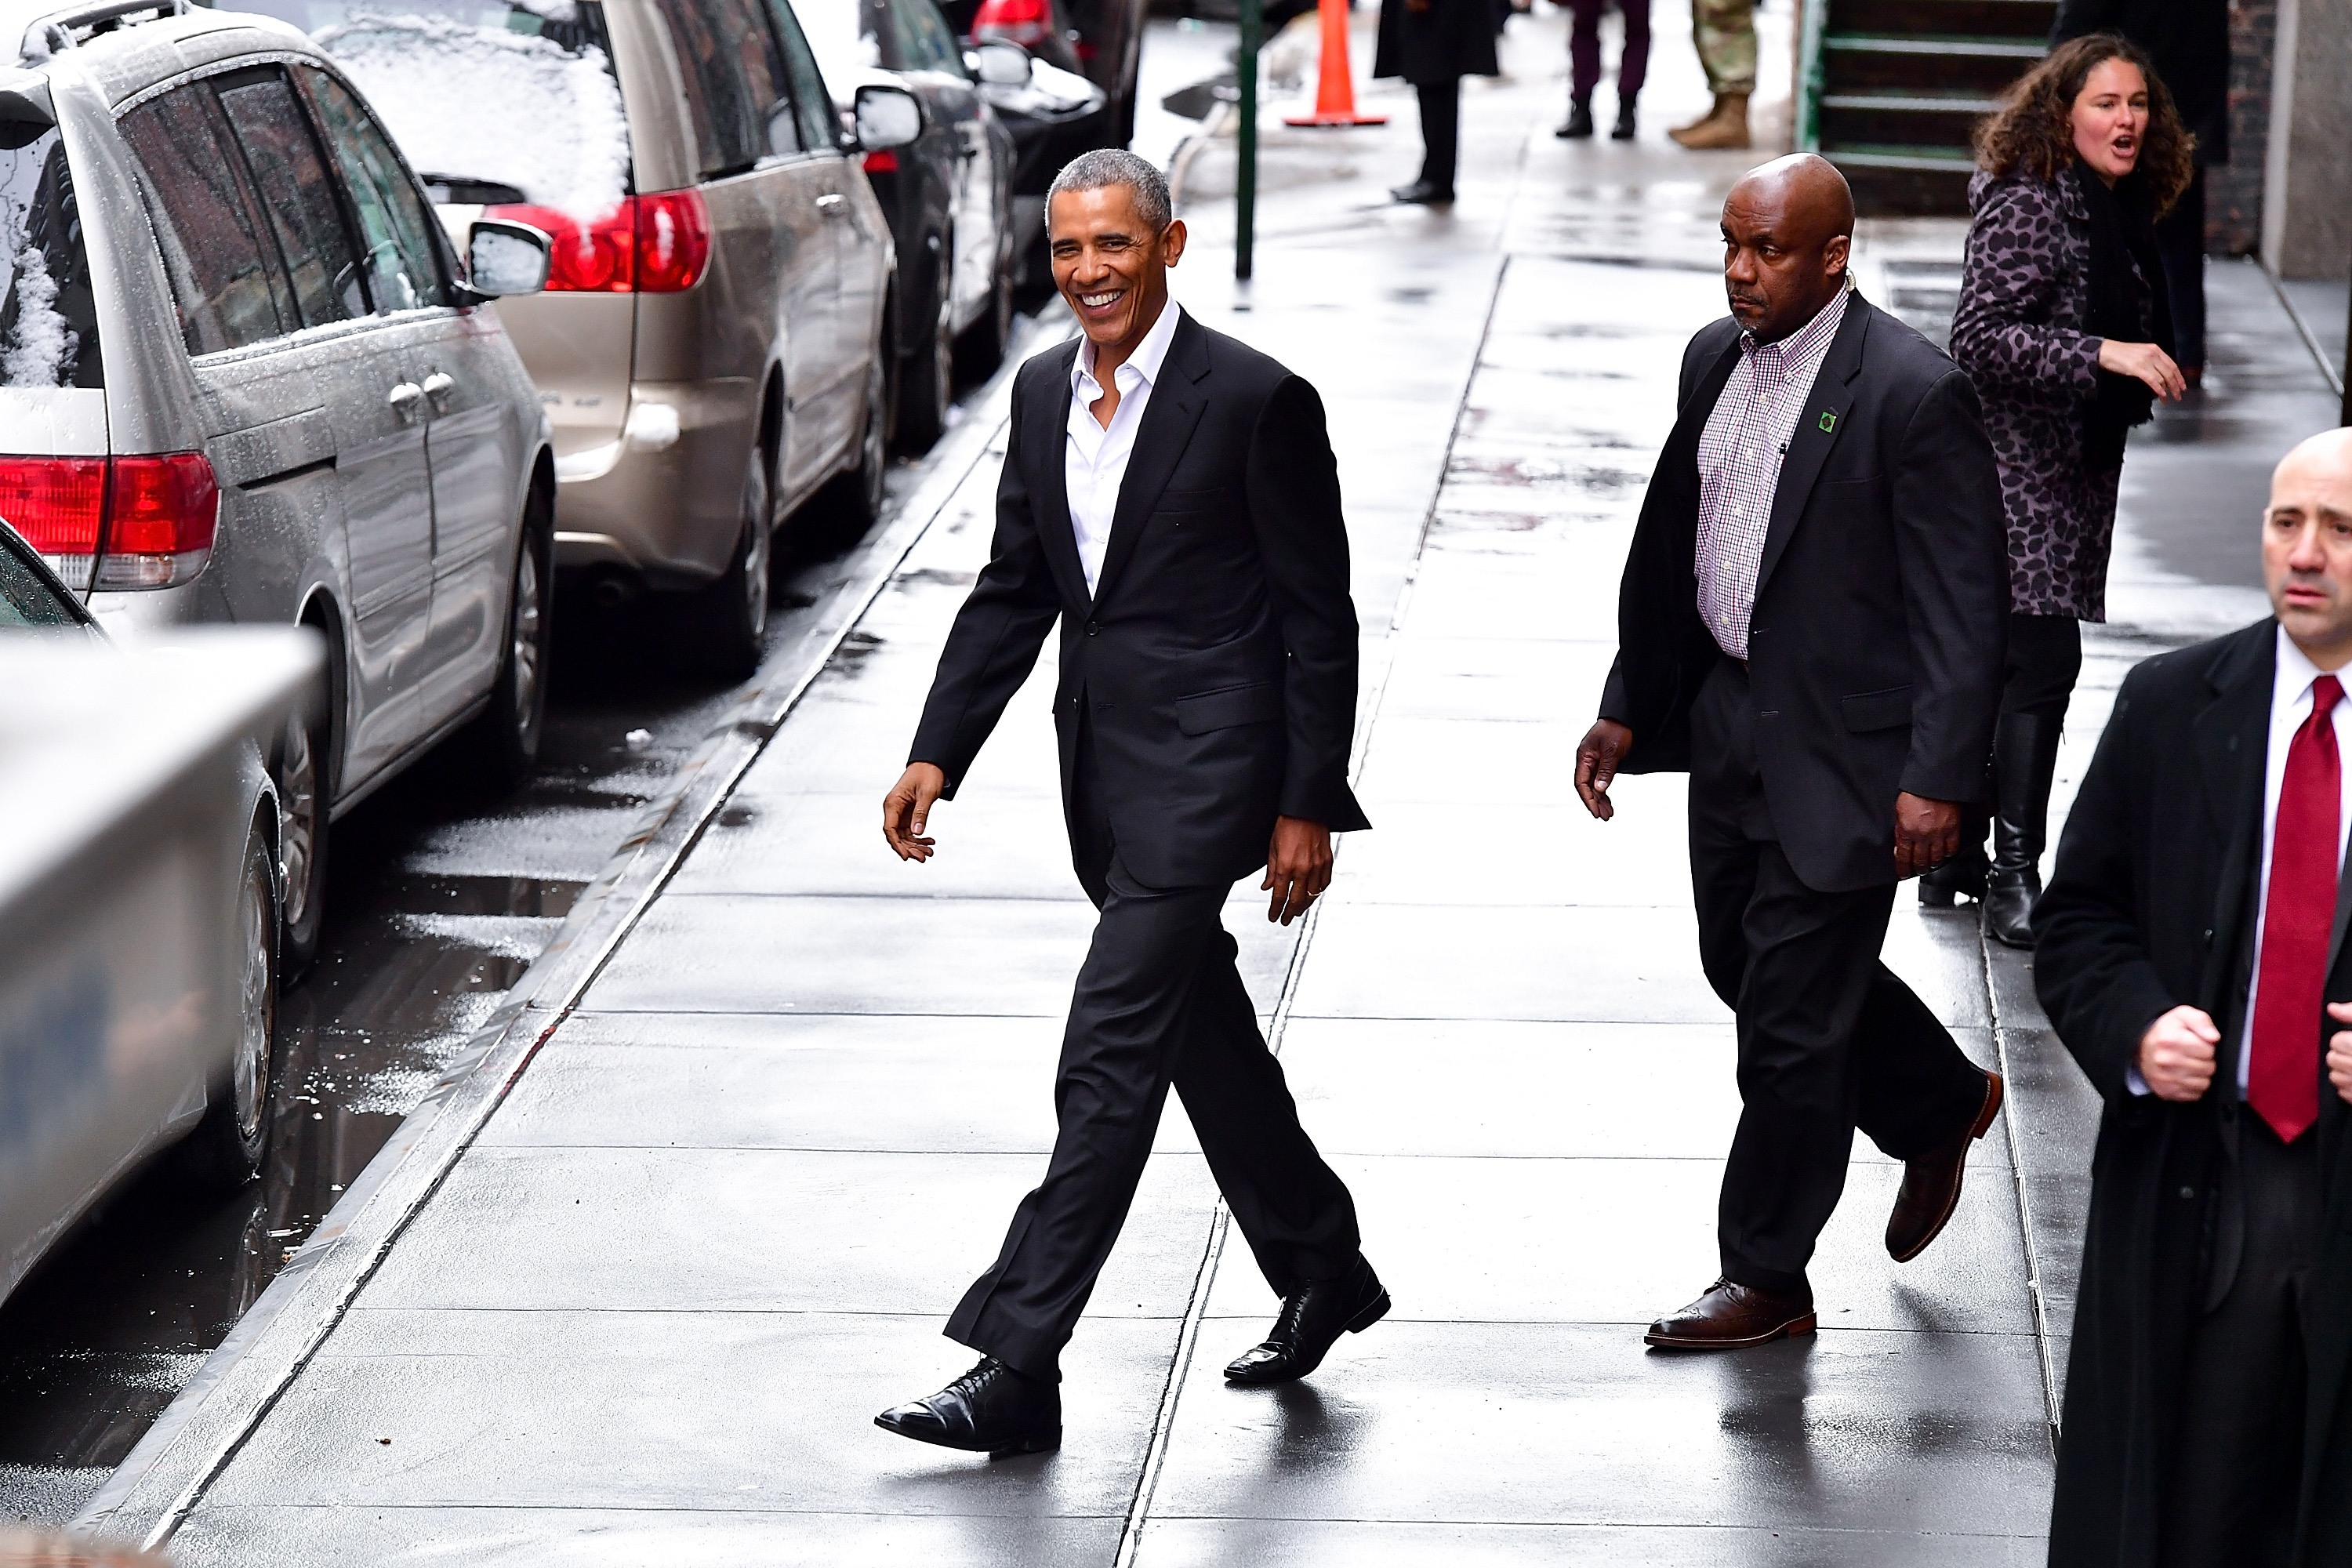 Perry bamonte stock photos and pictures getty images - Obamas Are Basically Regulars At Carbone And Upland Now